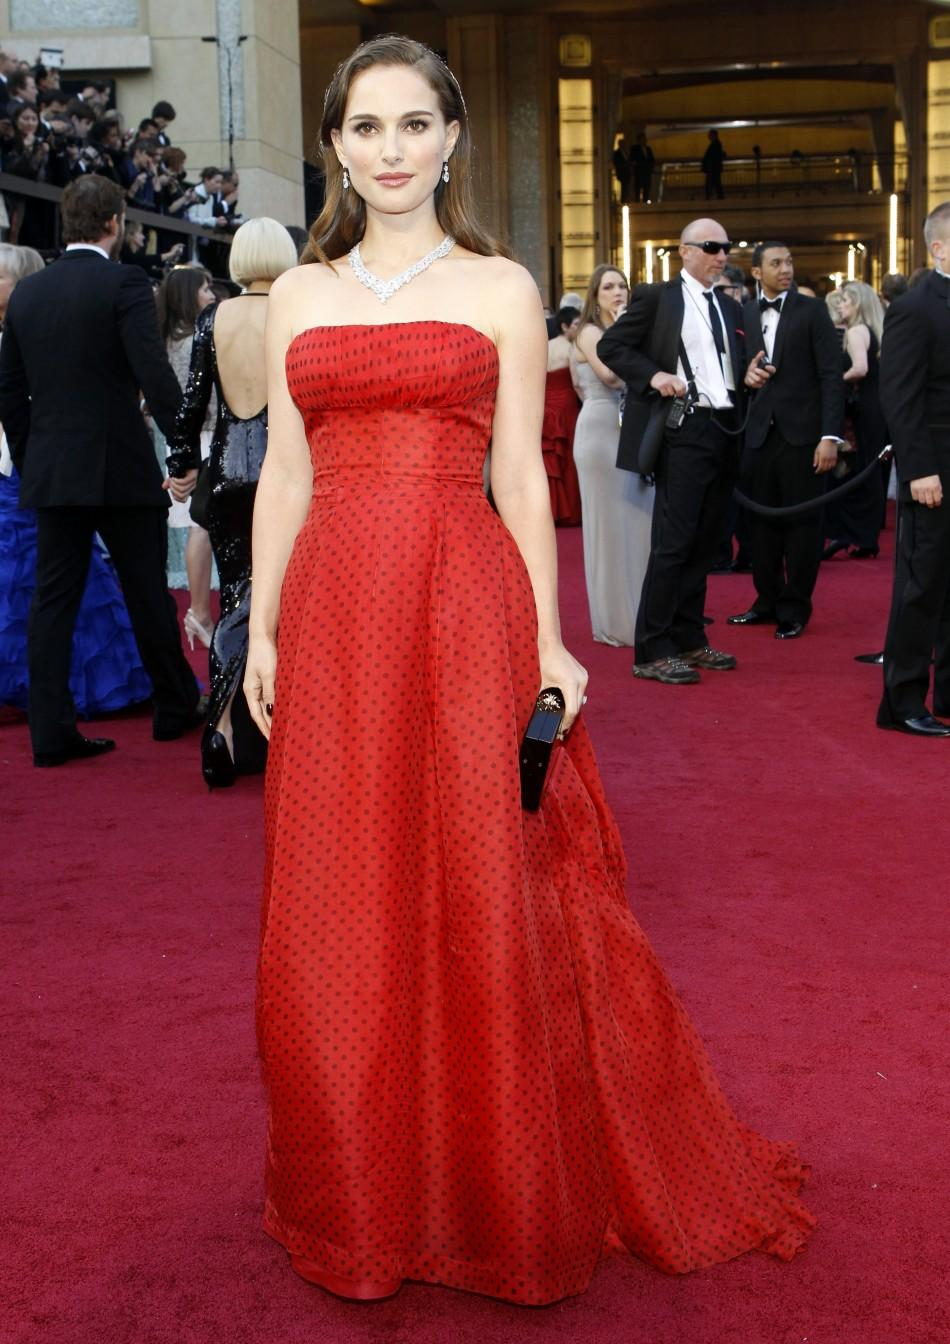 Actress Natalie Portman arrives at the 84th Academy Awards in Hollywood, California February 26, 2012.